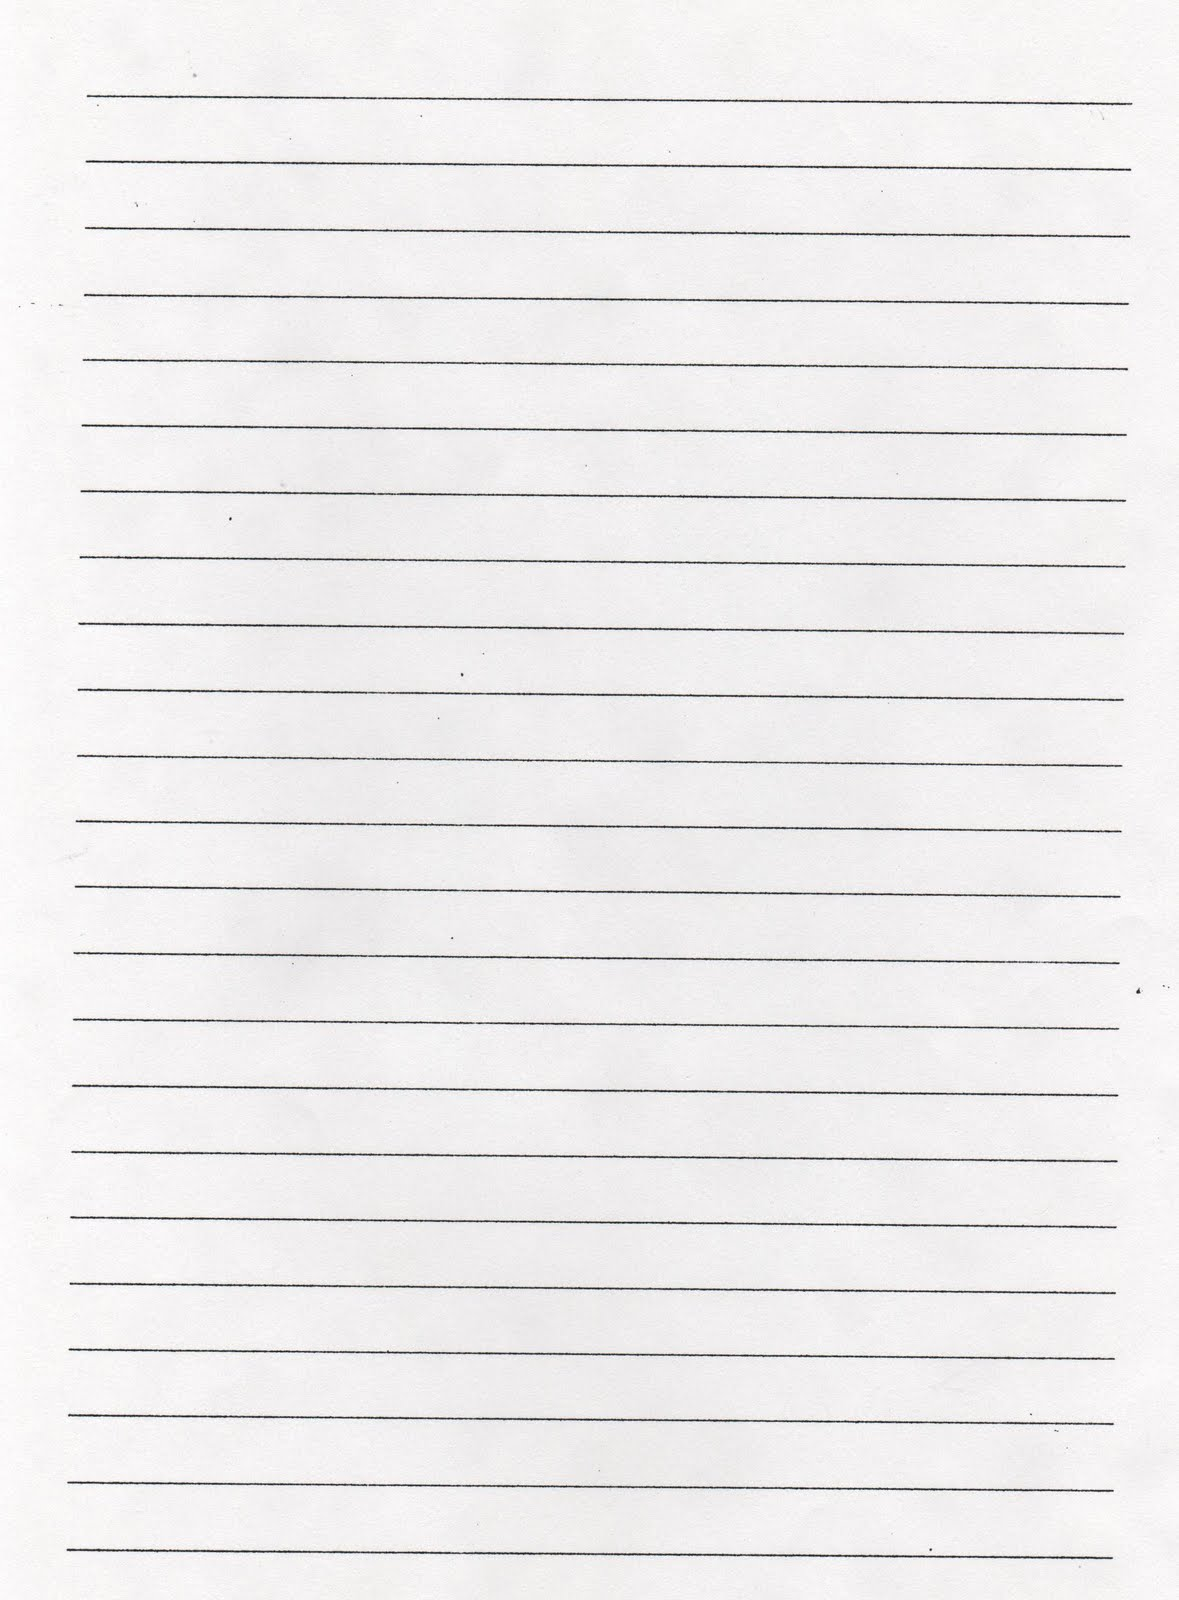 printable lined paper template – School Writing Paper Template